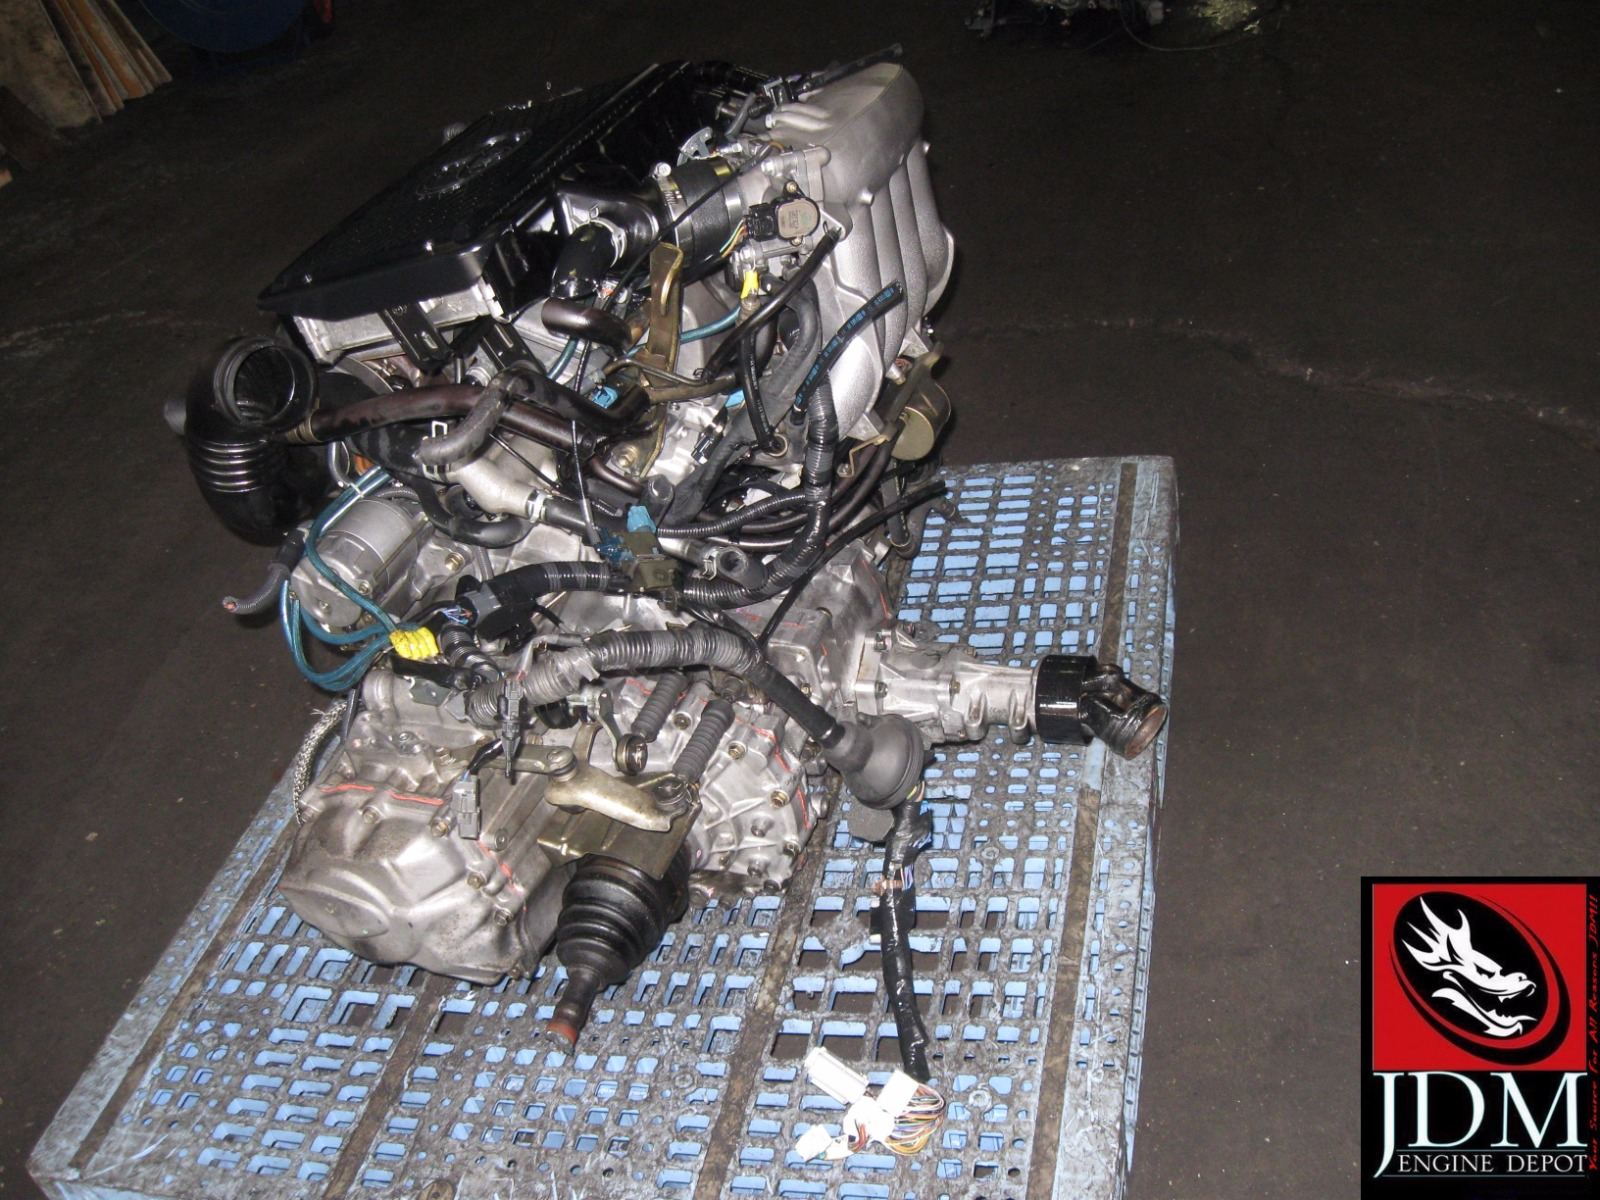 98 03 Toyota Caldina St215 20l Turbo Engine Transmission Wiring Ecu This Listing Is For A Used Motor Set Imported From Japan